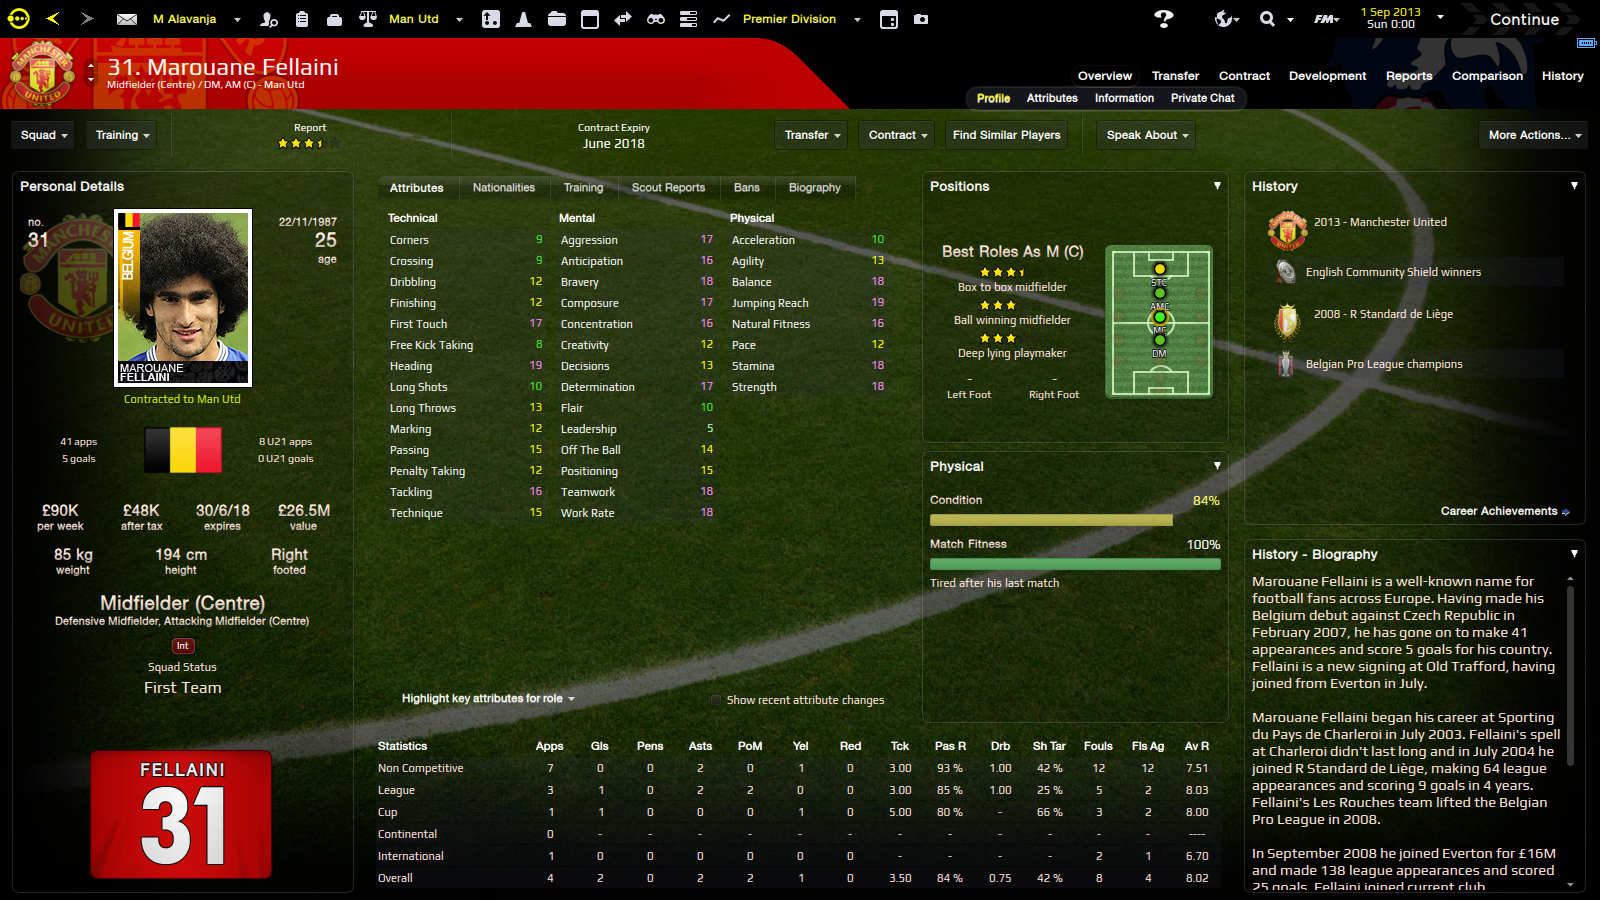 Download Game Pc Football Manager Full Version Free